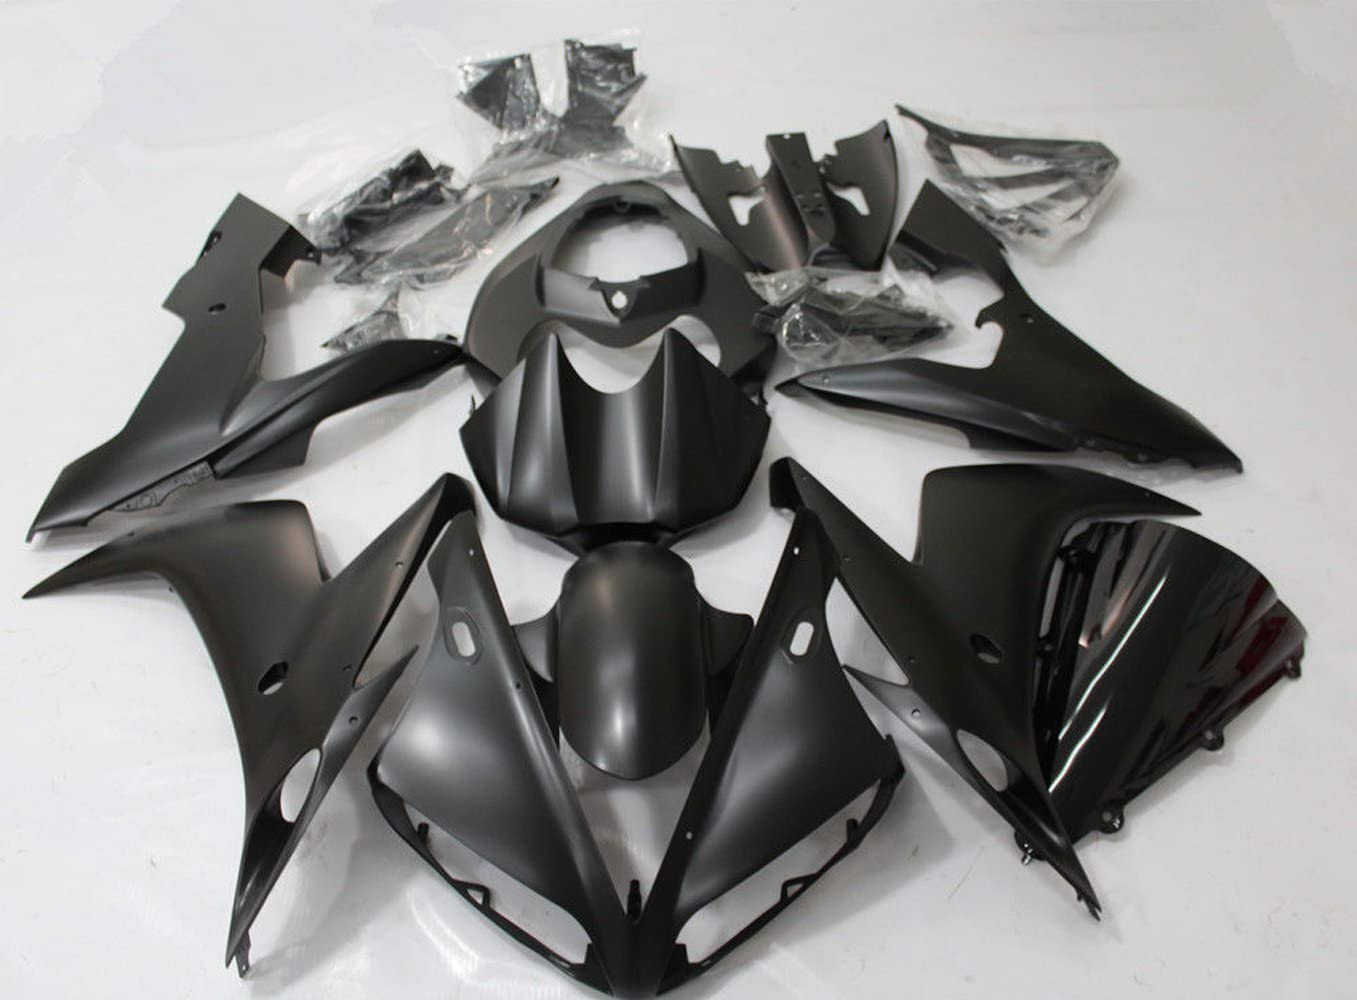 Gloss Black Fairing Kit for Compatible with Yamaha YZF R1 2004 2005 2006 ABS Bodywork YZF-R1 04 Y1005 HTTMT